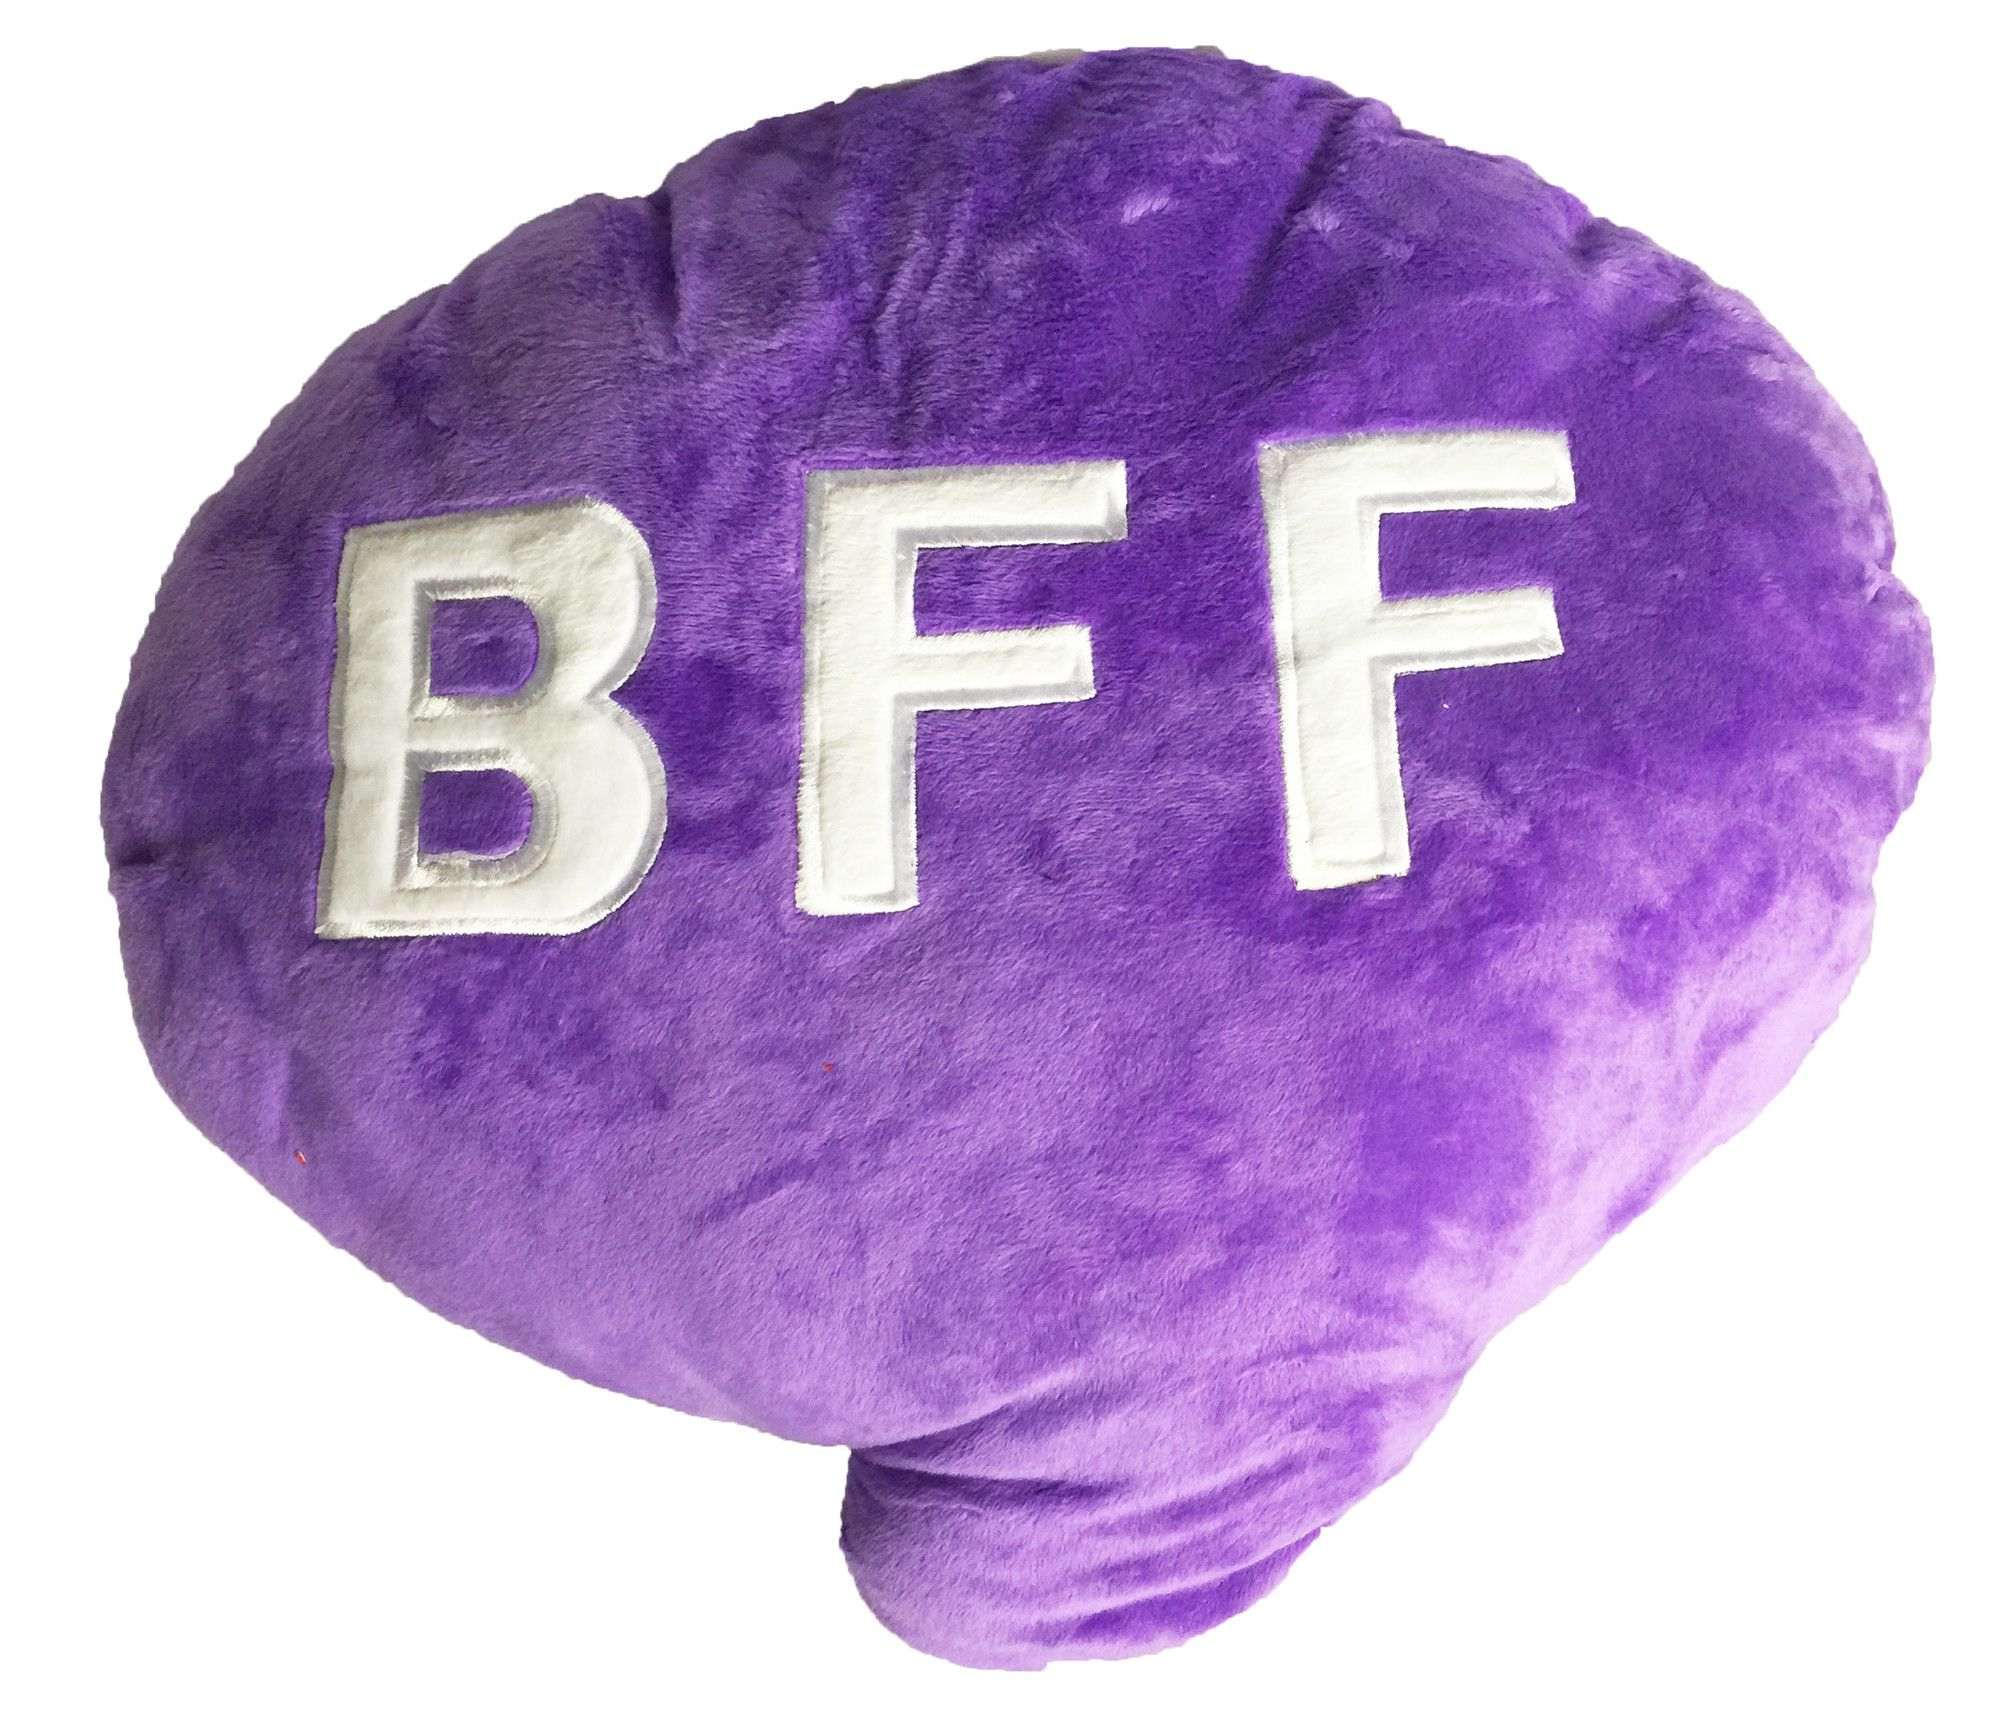 Bff emoji sofa cushion bff pillows pinterest emoji bff and